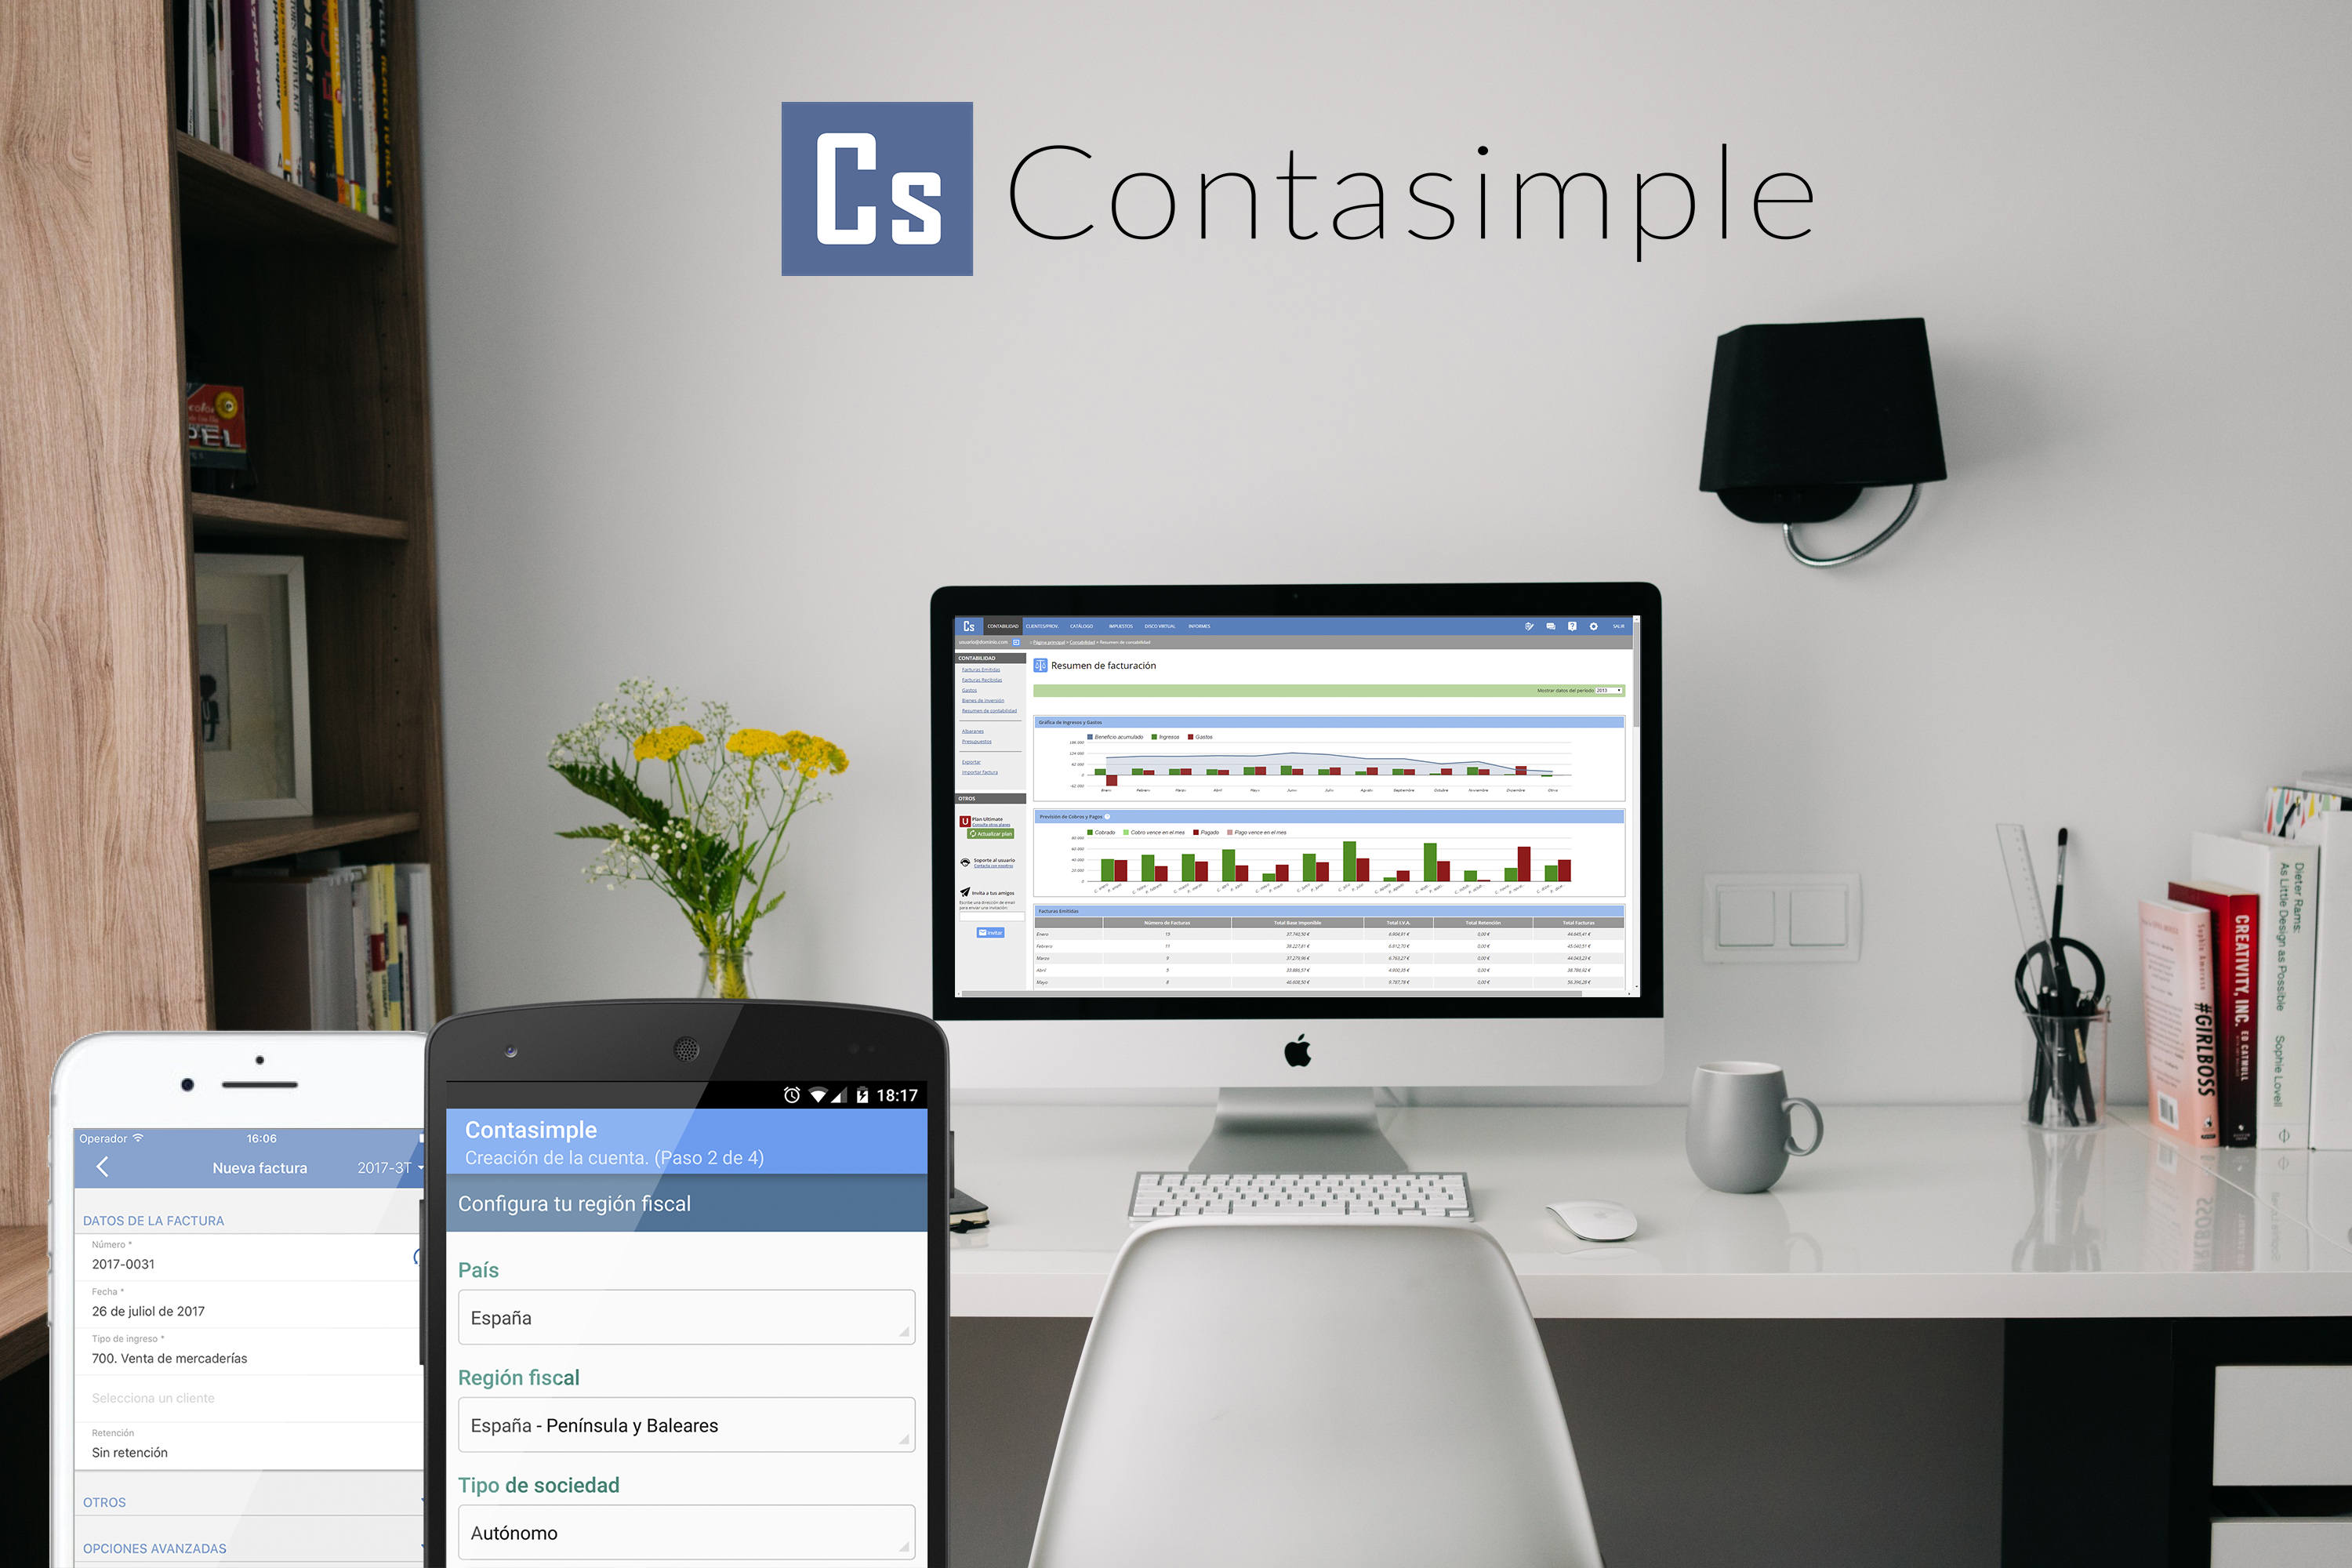 Contasimple is available for desktop, web and mobile.